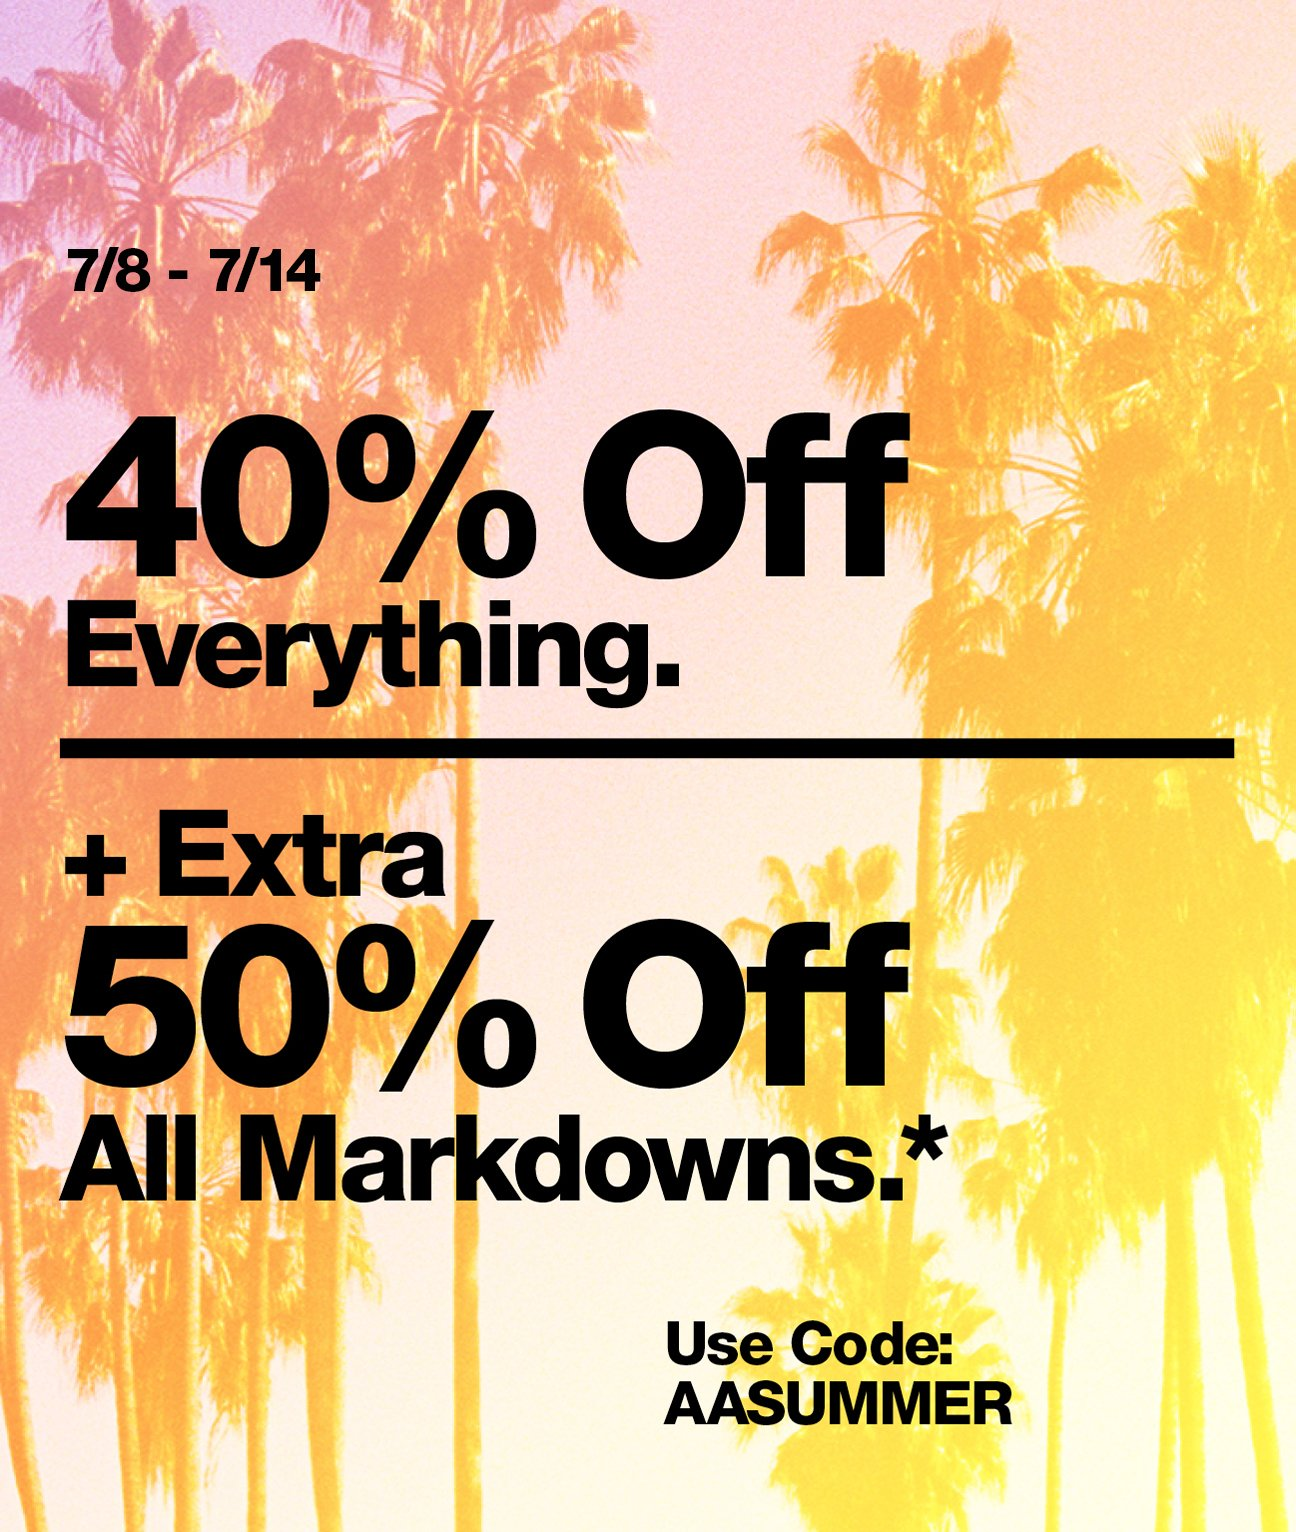 40% Off Everything + 50% Off Markdowns